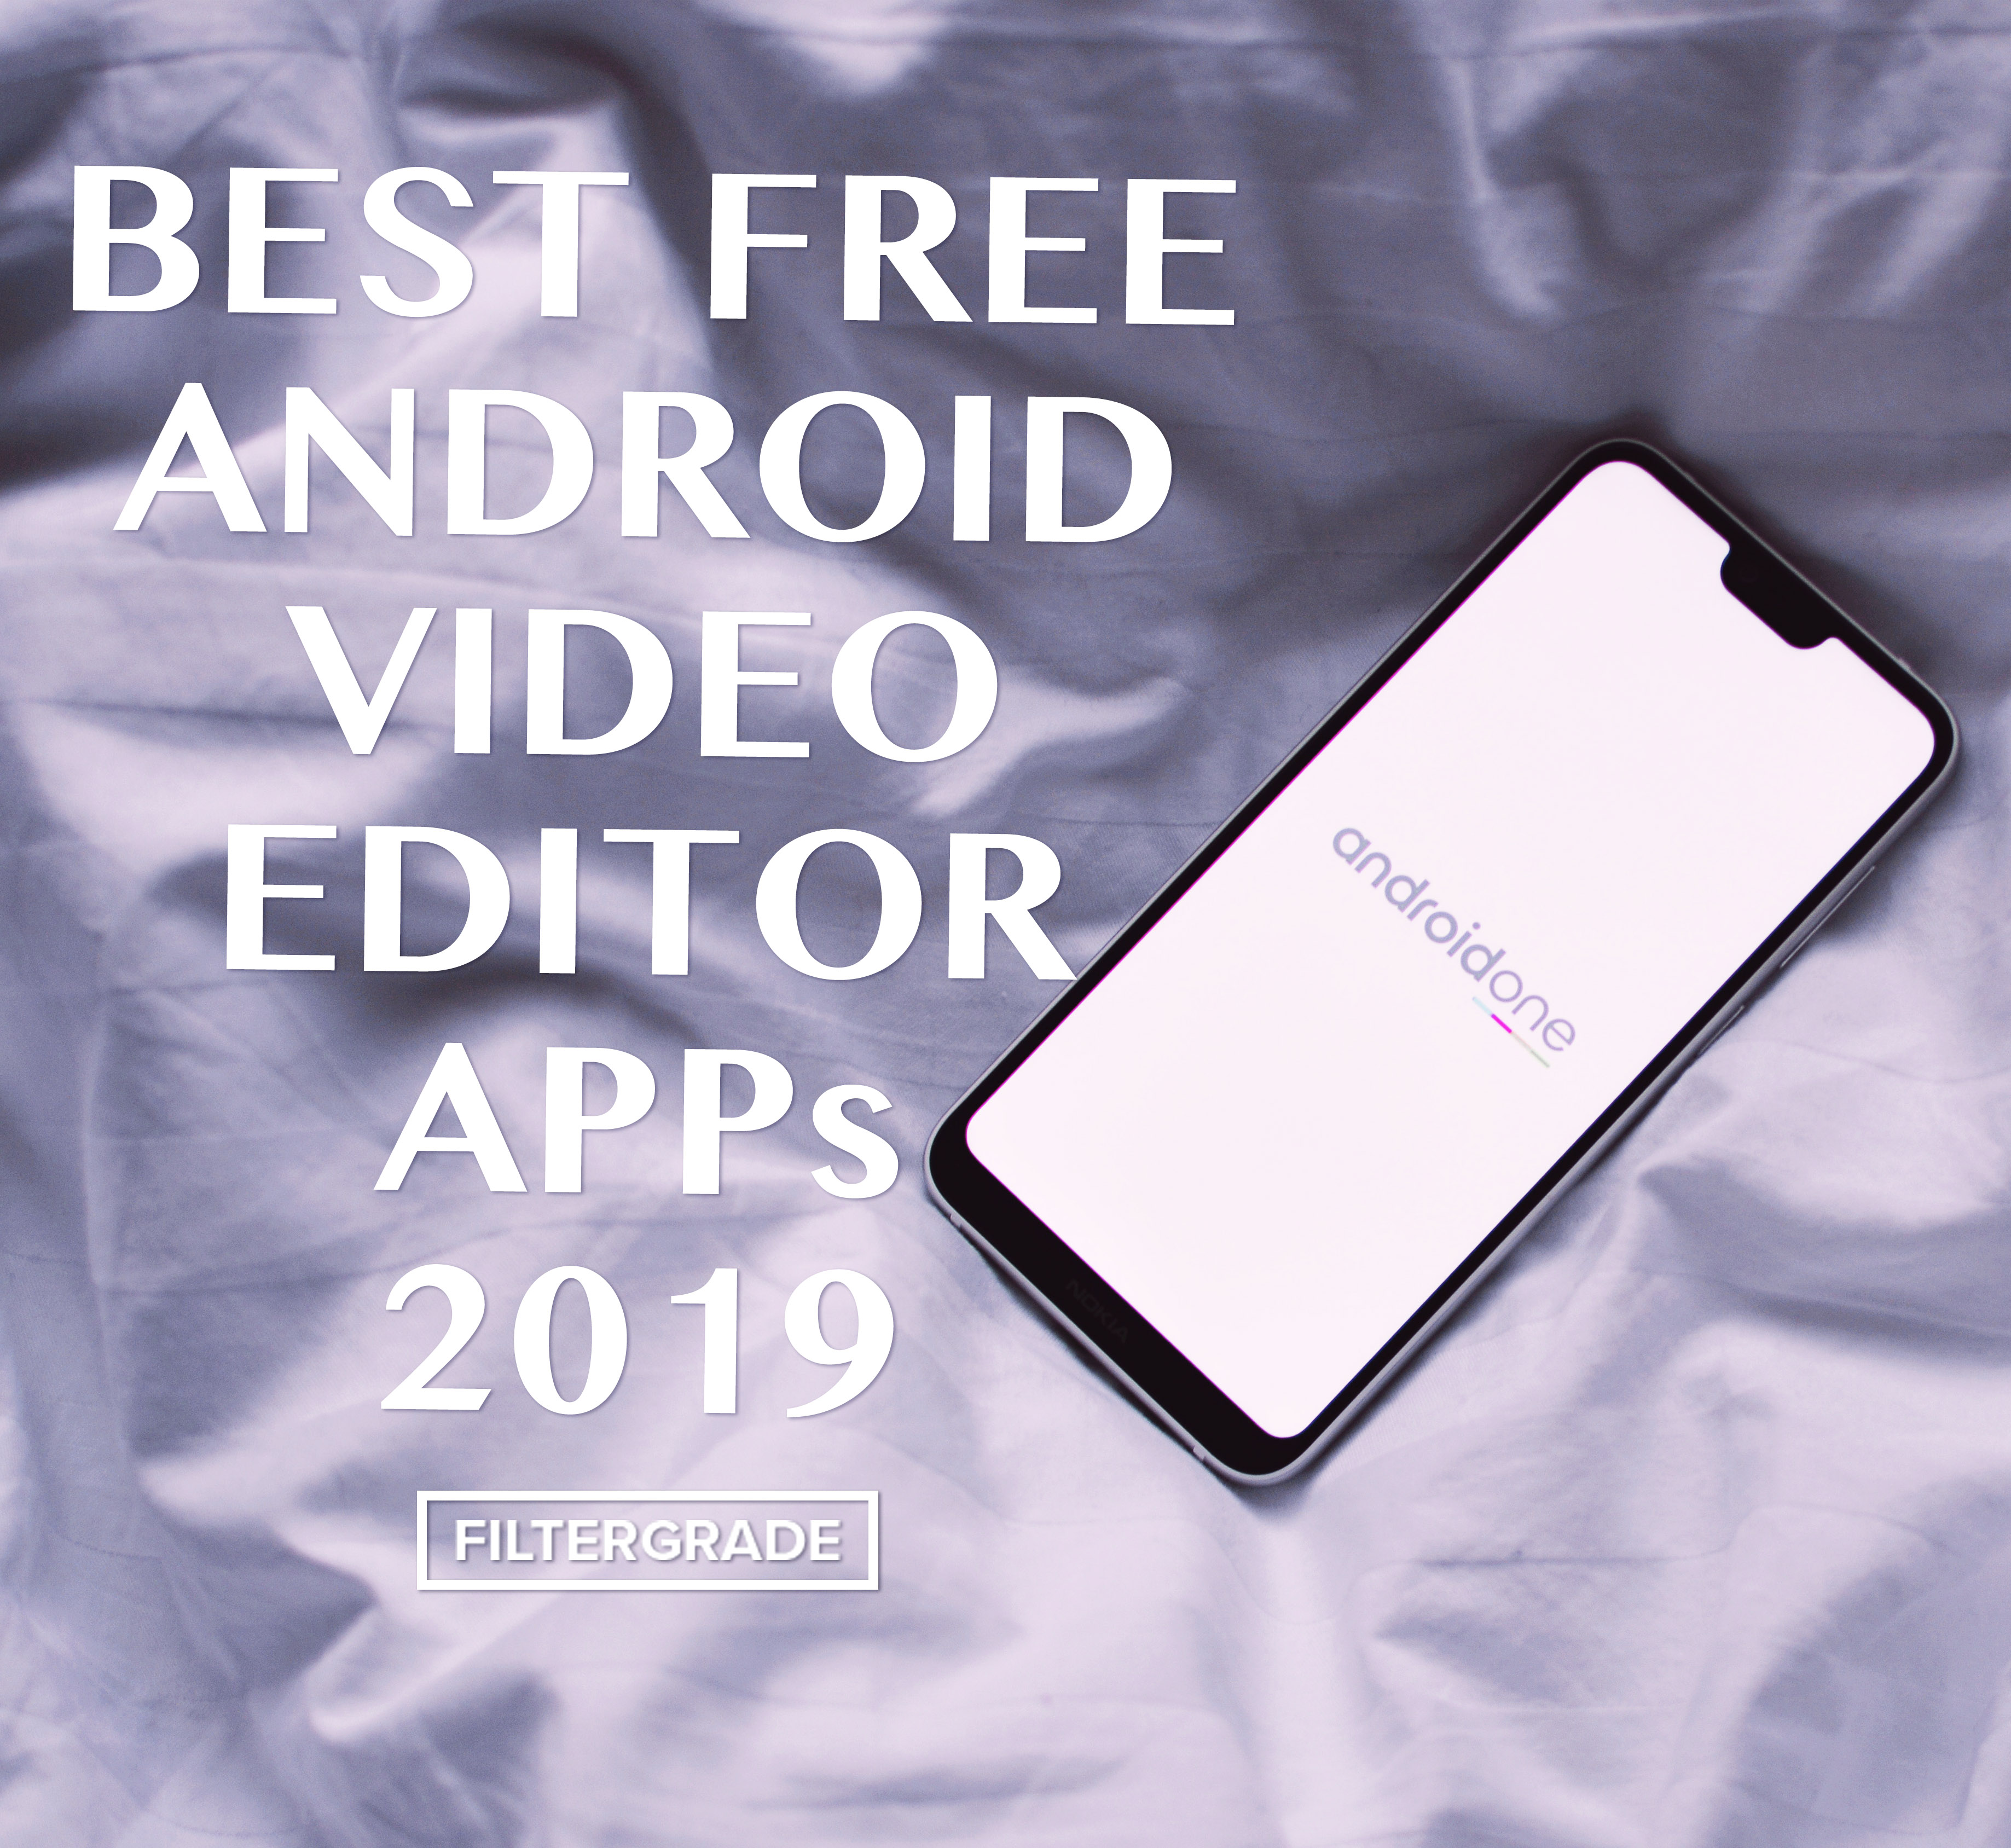 Best FREE Android Video Editor Apps 2019.